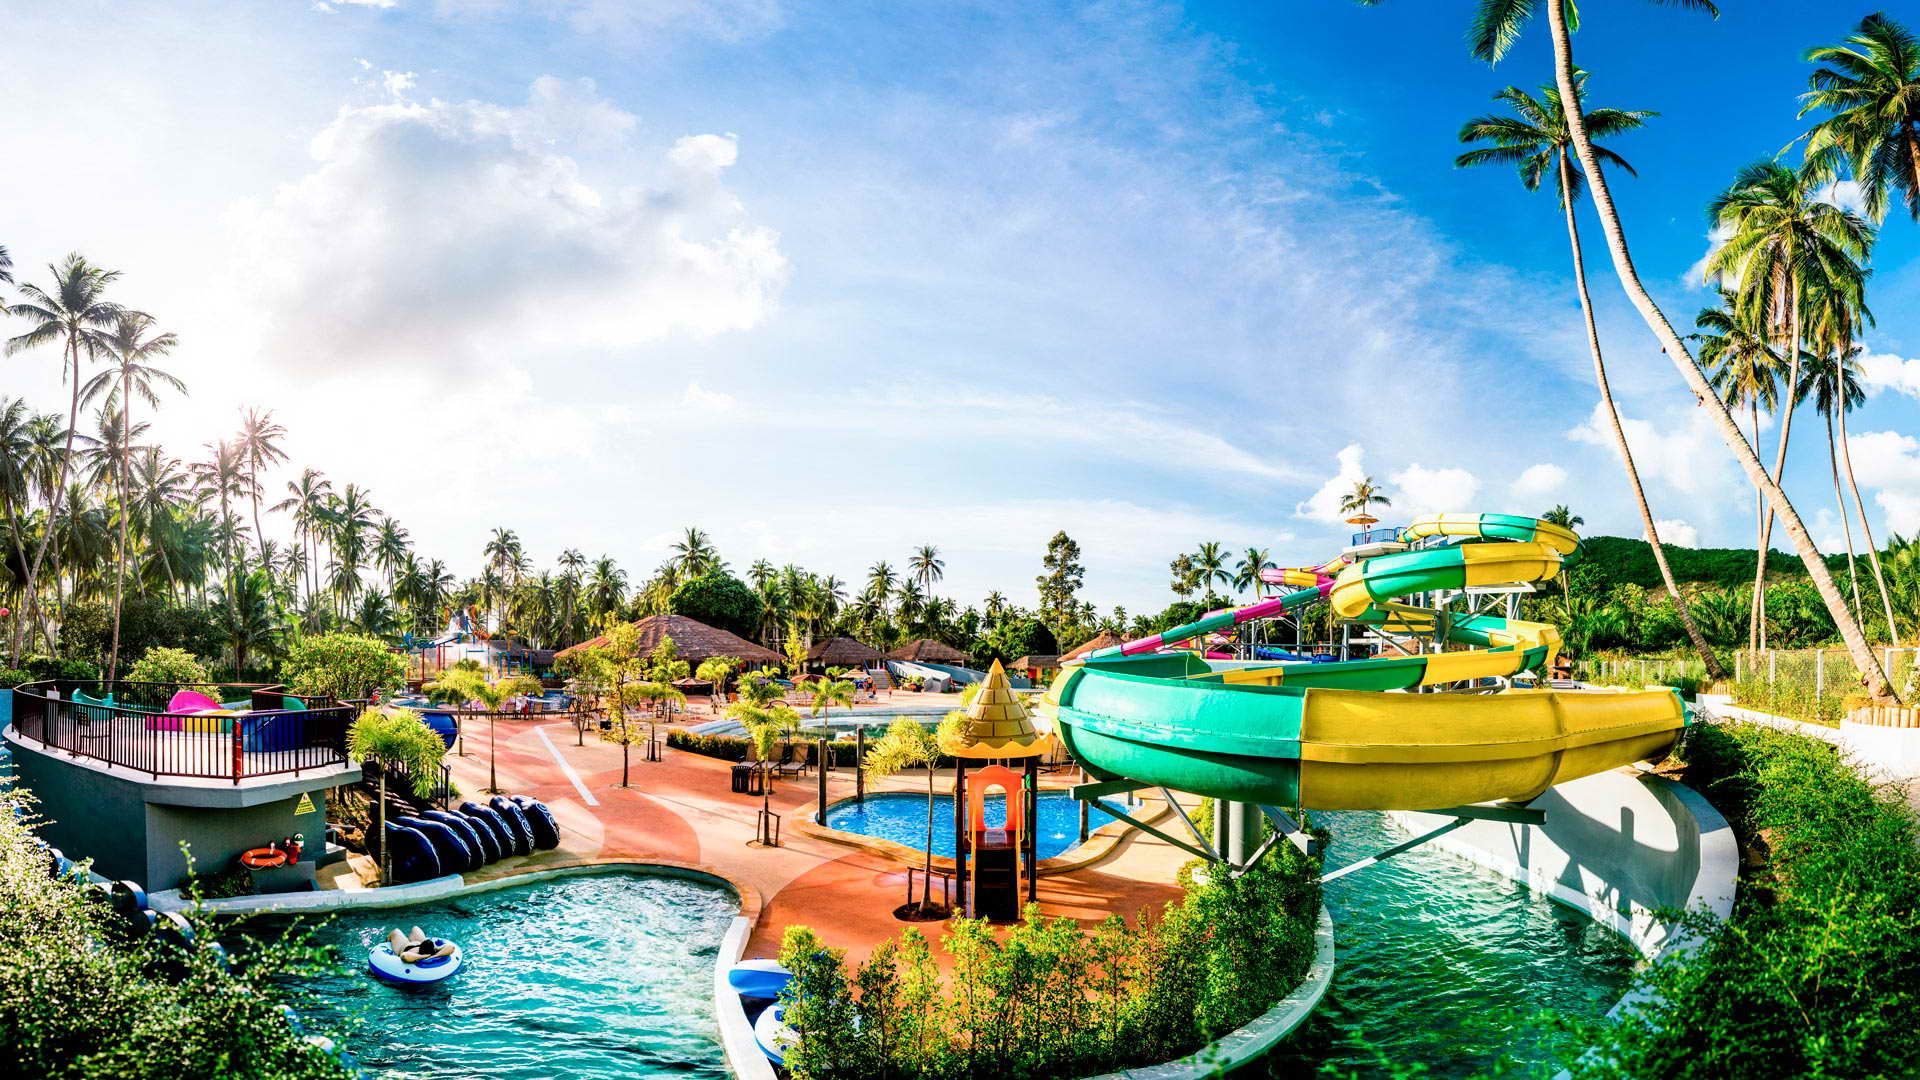 Samui Water Park - one of the most attractive sites for kids